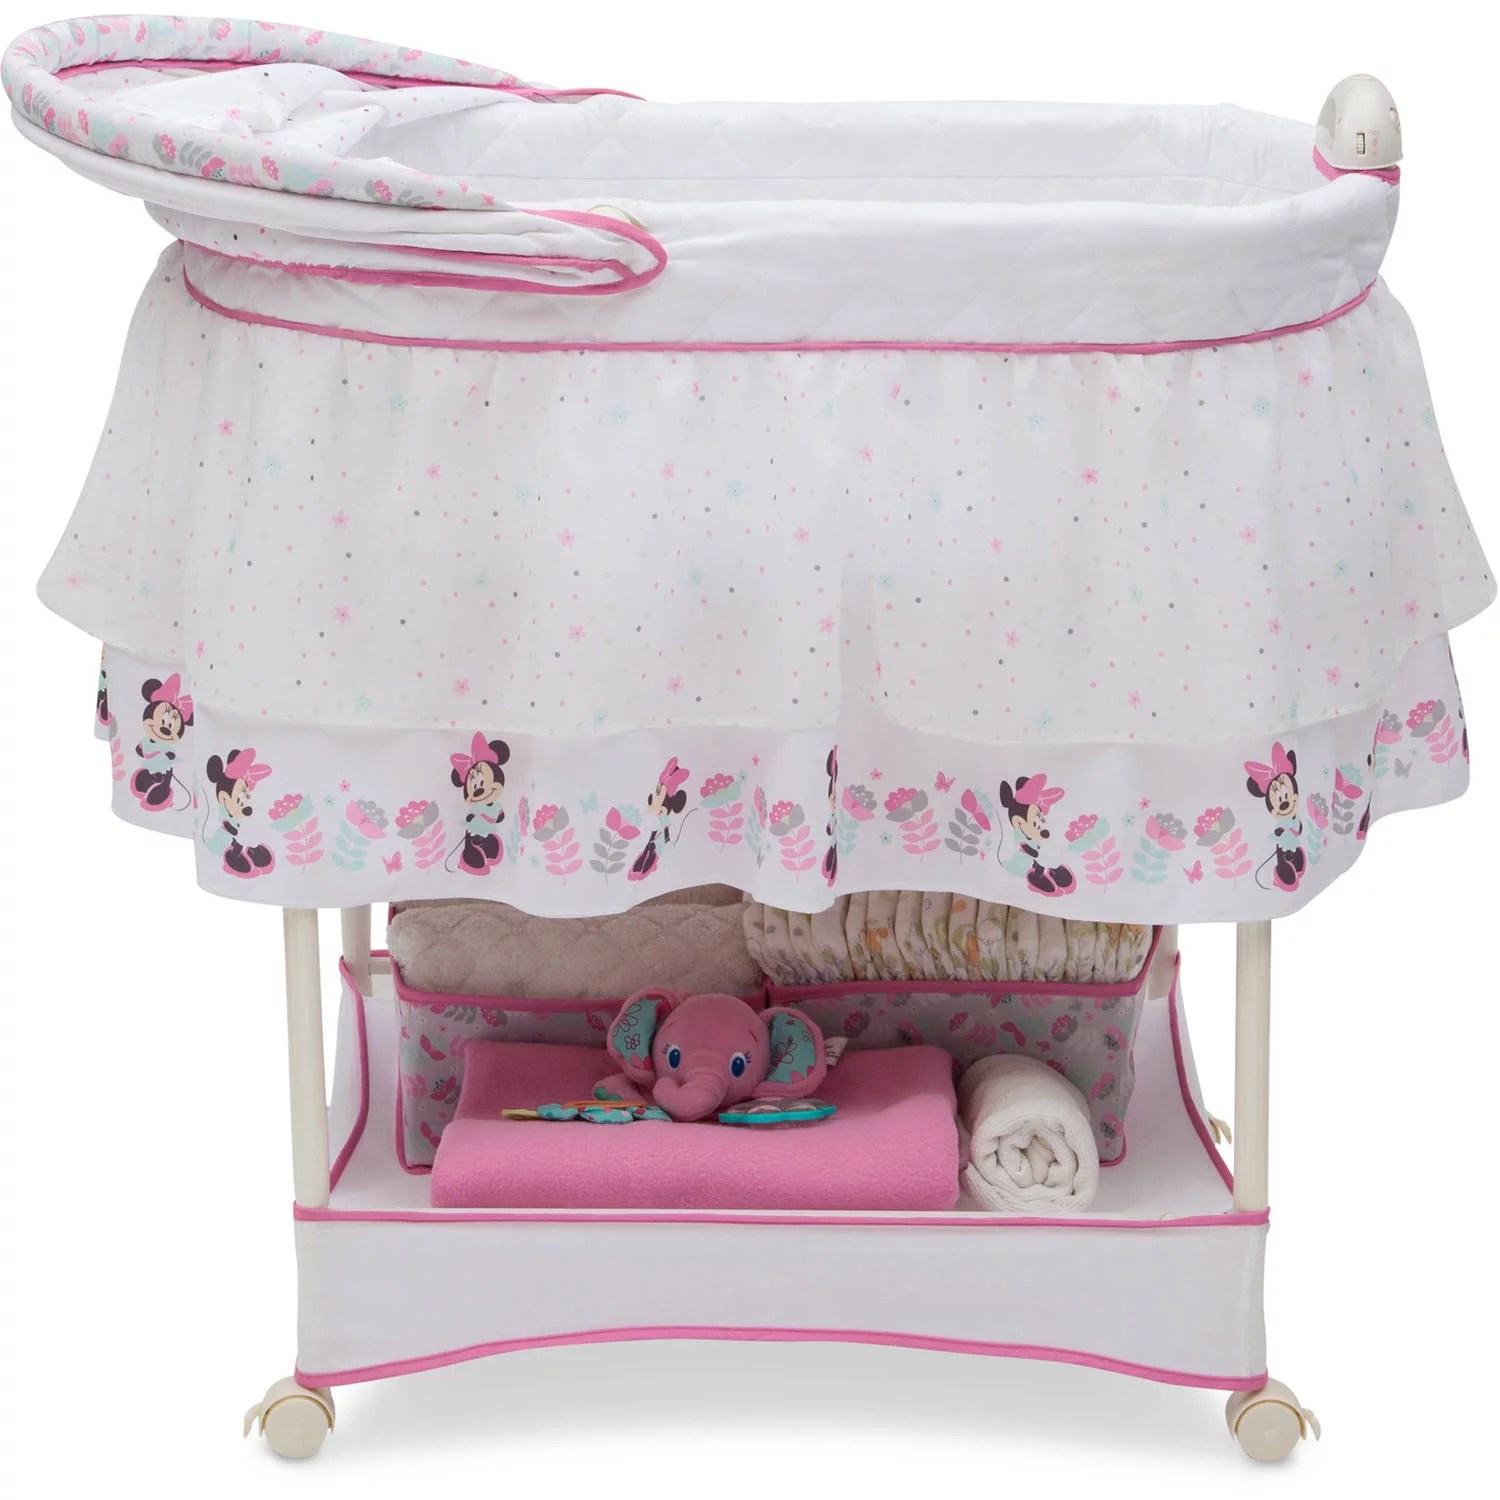 Newborn Bassinet Best Newborn Bassinet Sleeper Best 25 Baby Bedside Sleeper